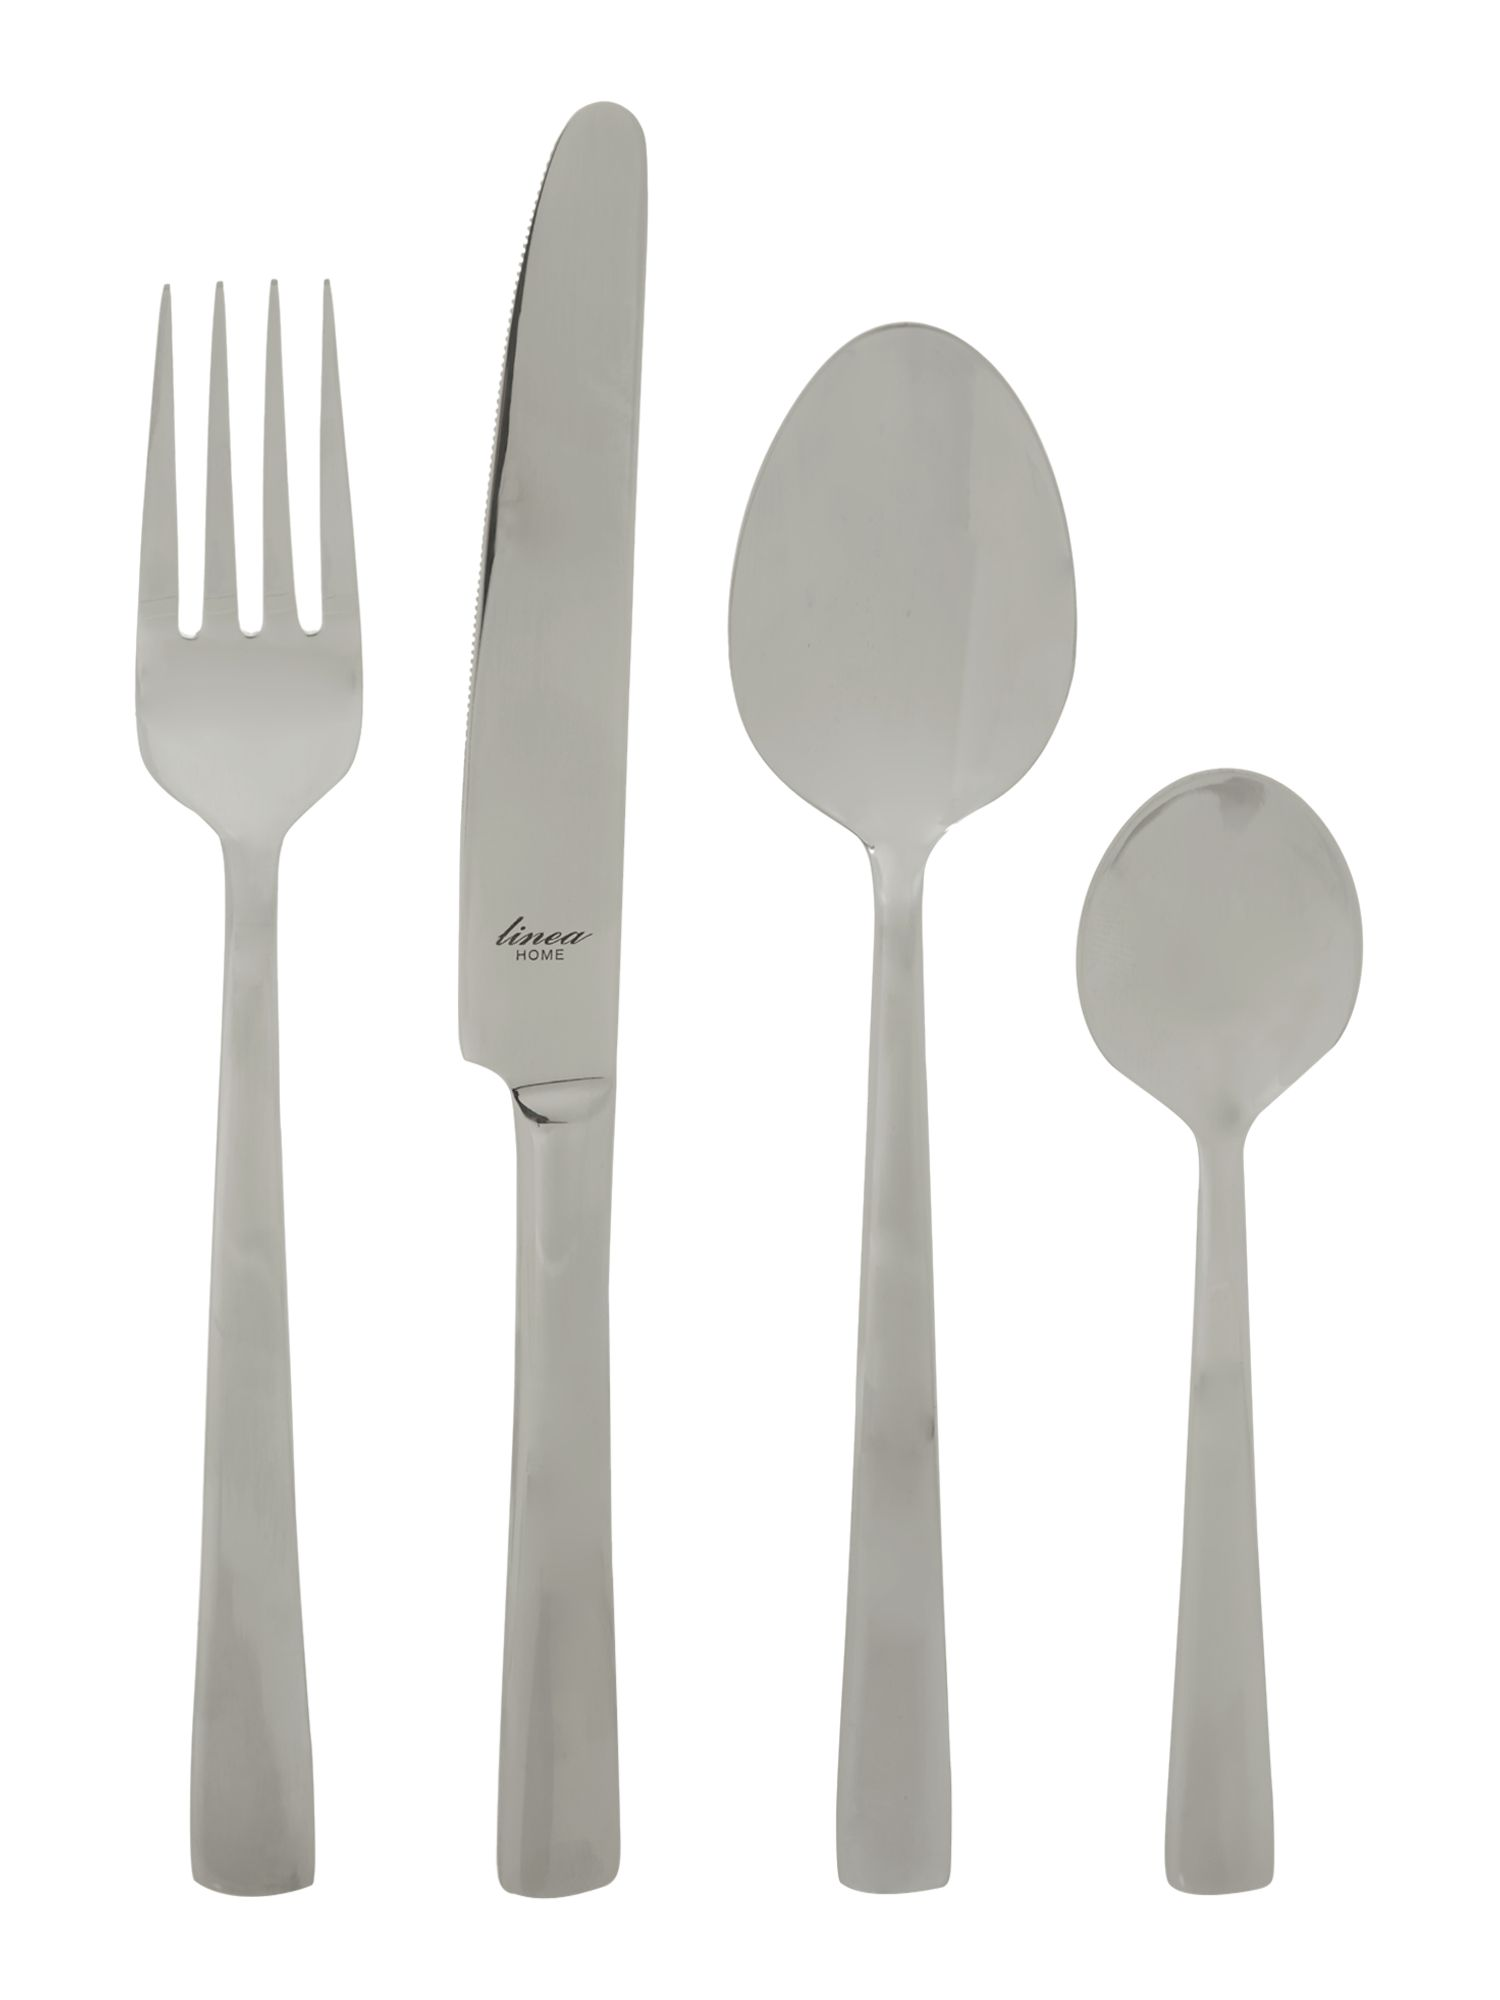 Hoxton 16 piece cutlery set